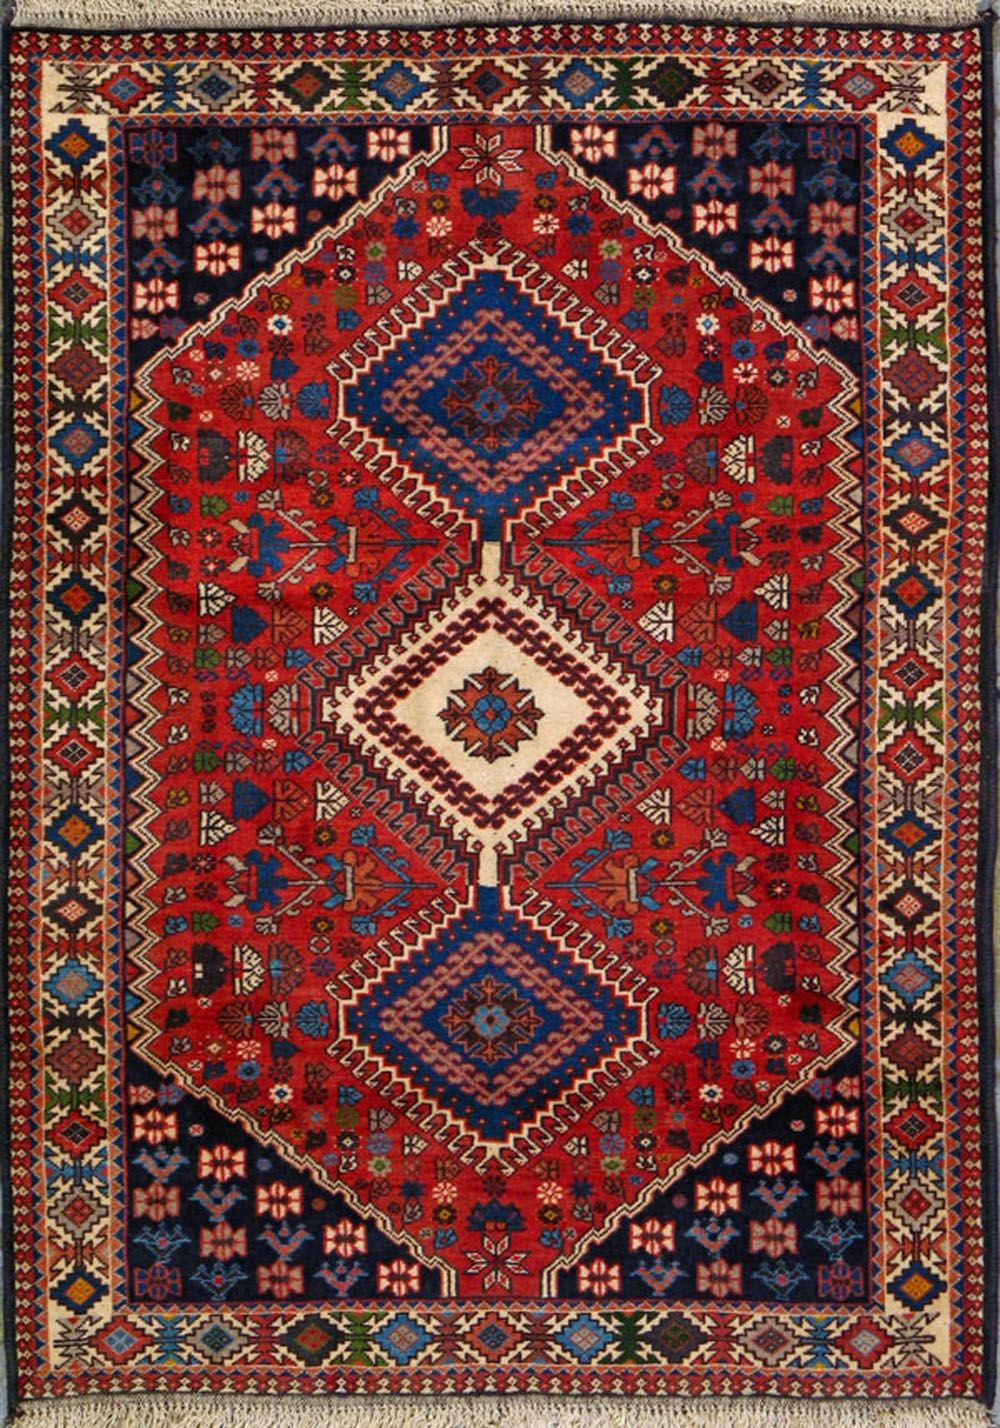 Buy Yalameh Persian Rug 3 6 X 4 10 Authentic Yalameh Handmade Rug Throughout Handmade Rugs (Image 7 of 15)